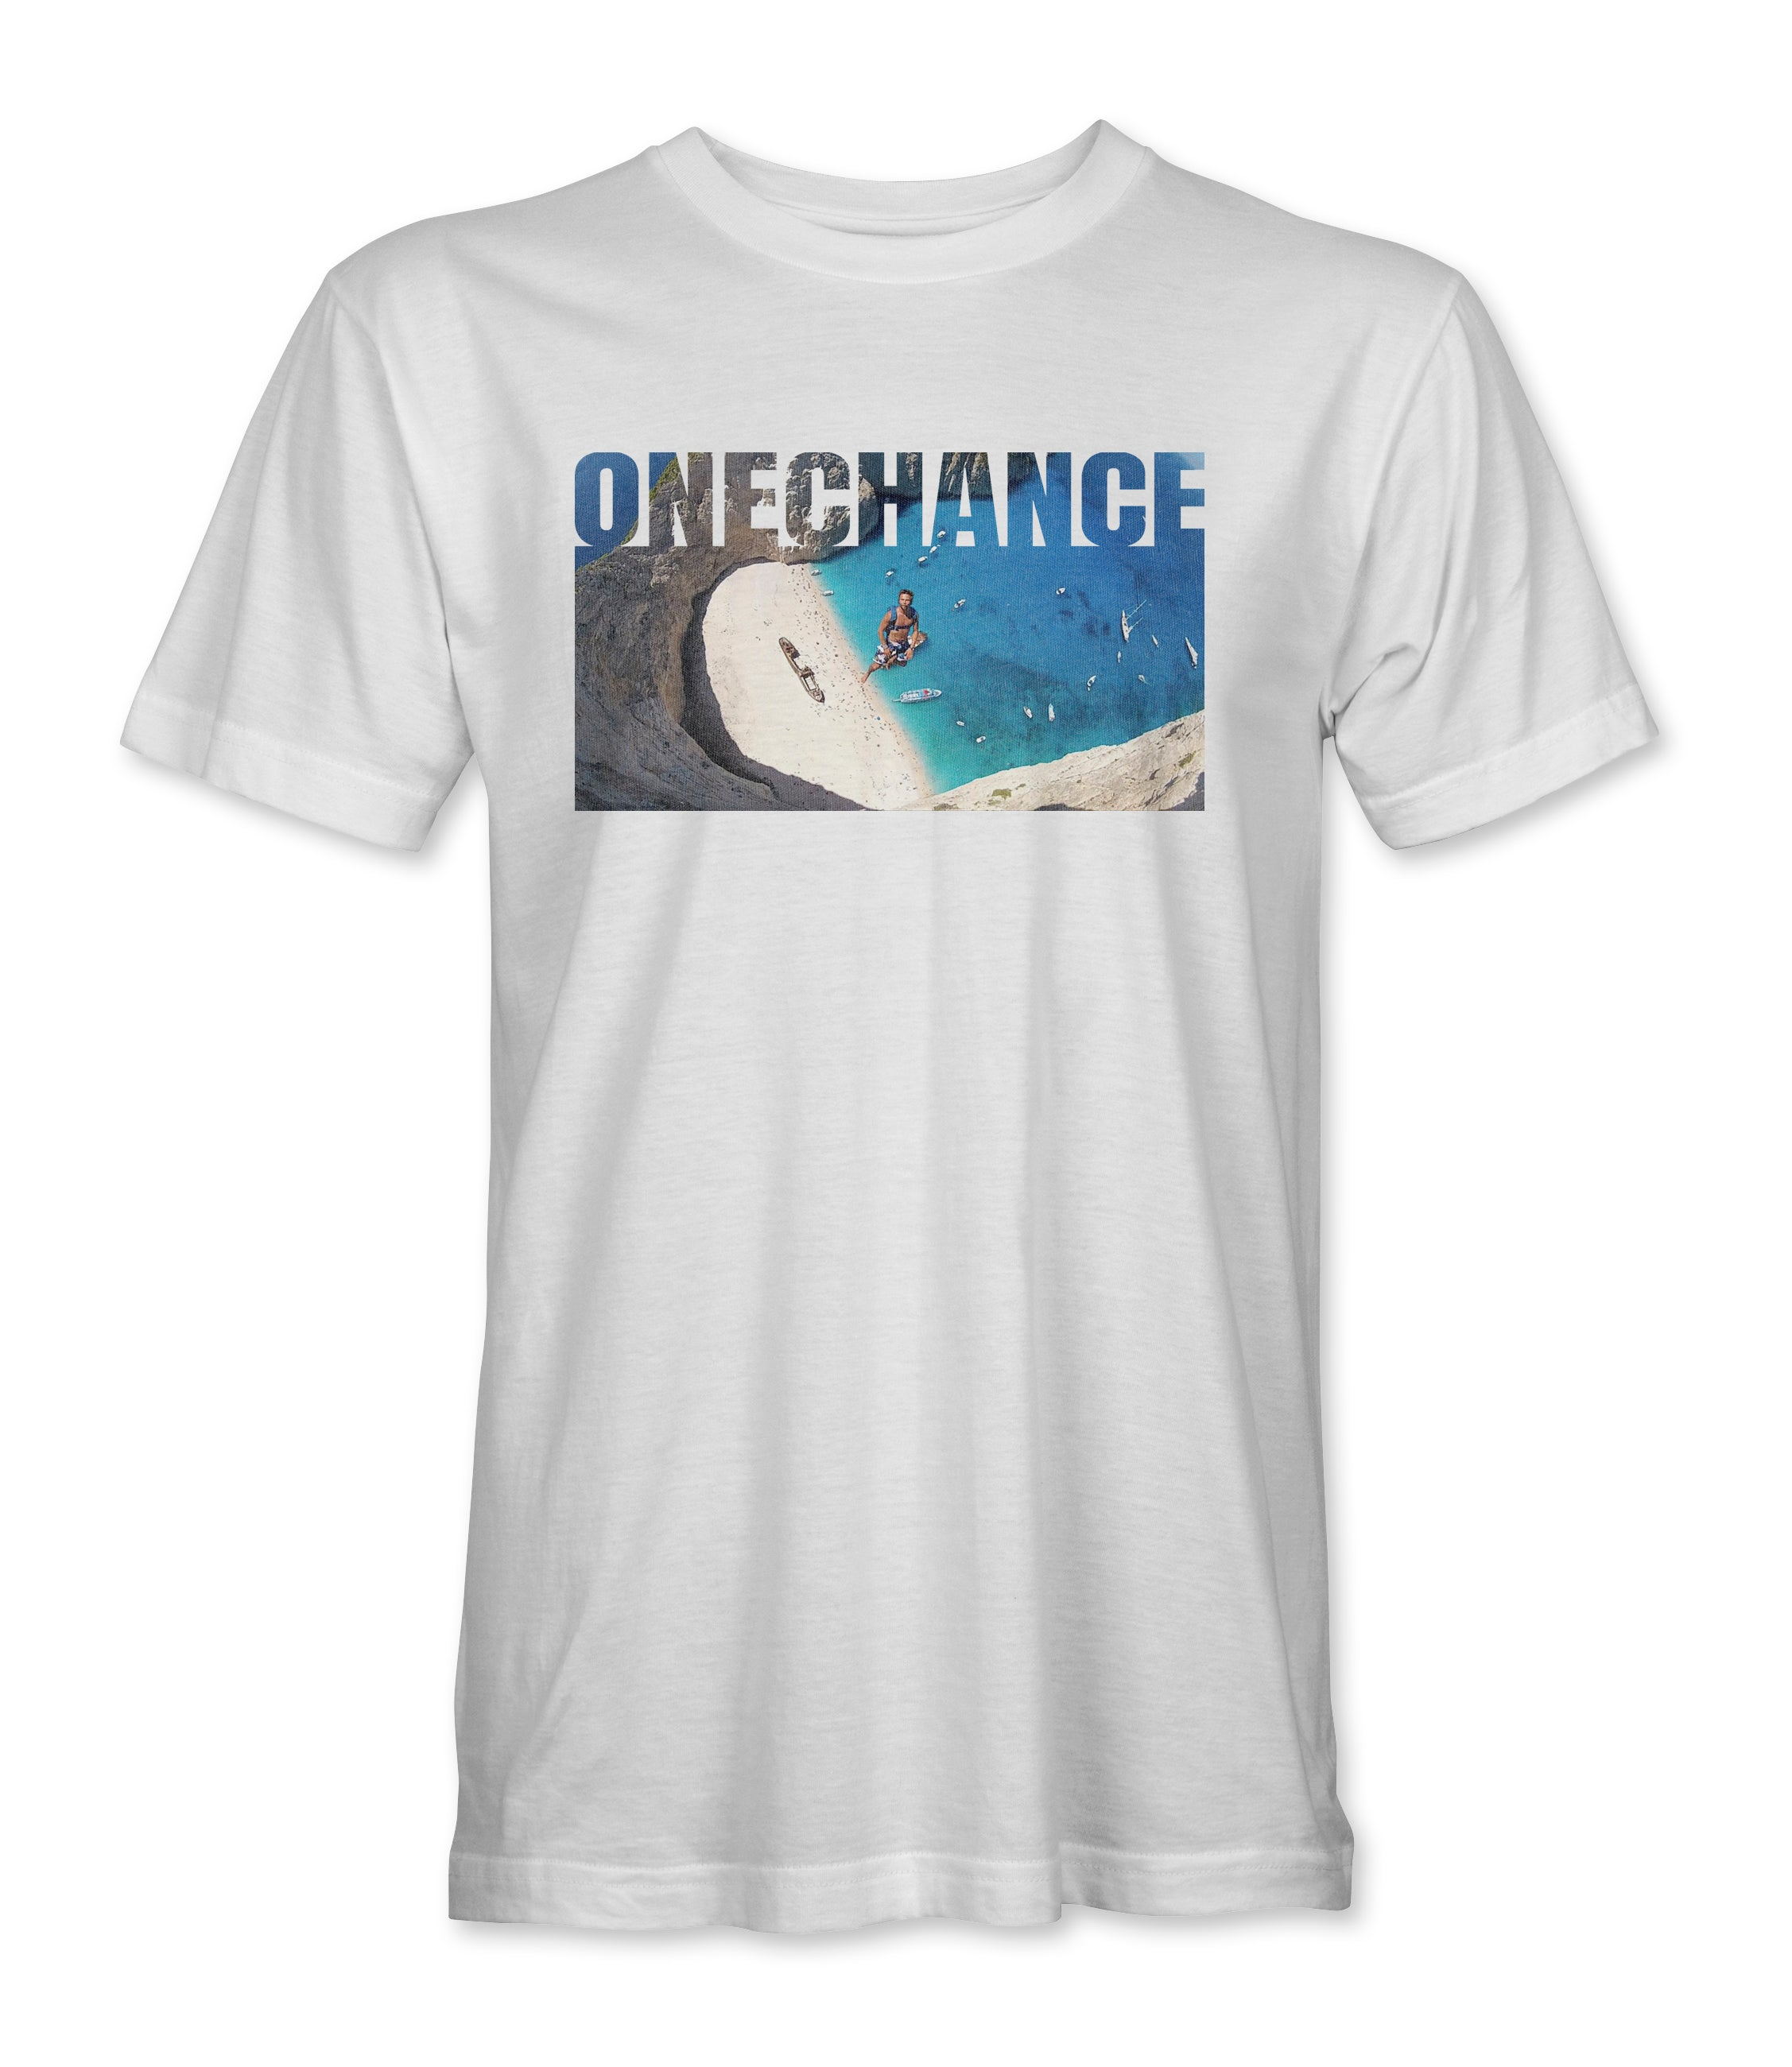 One Chance T-Shirt